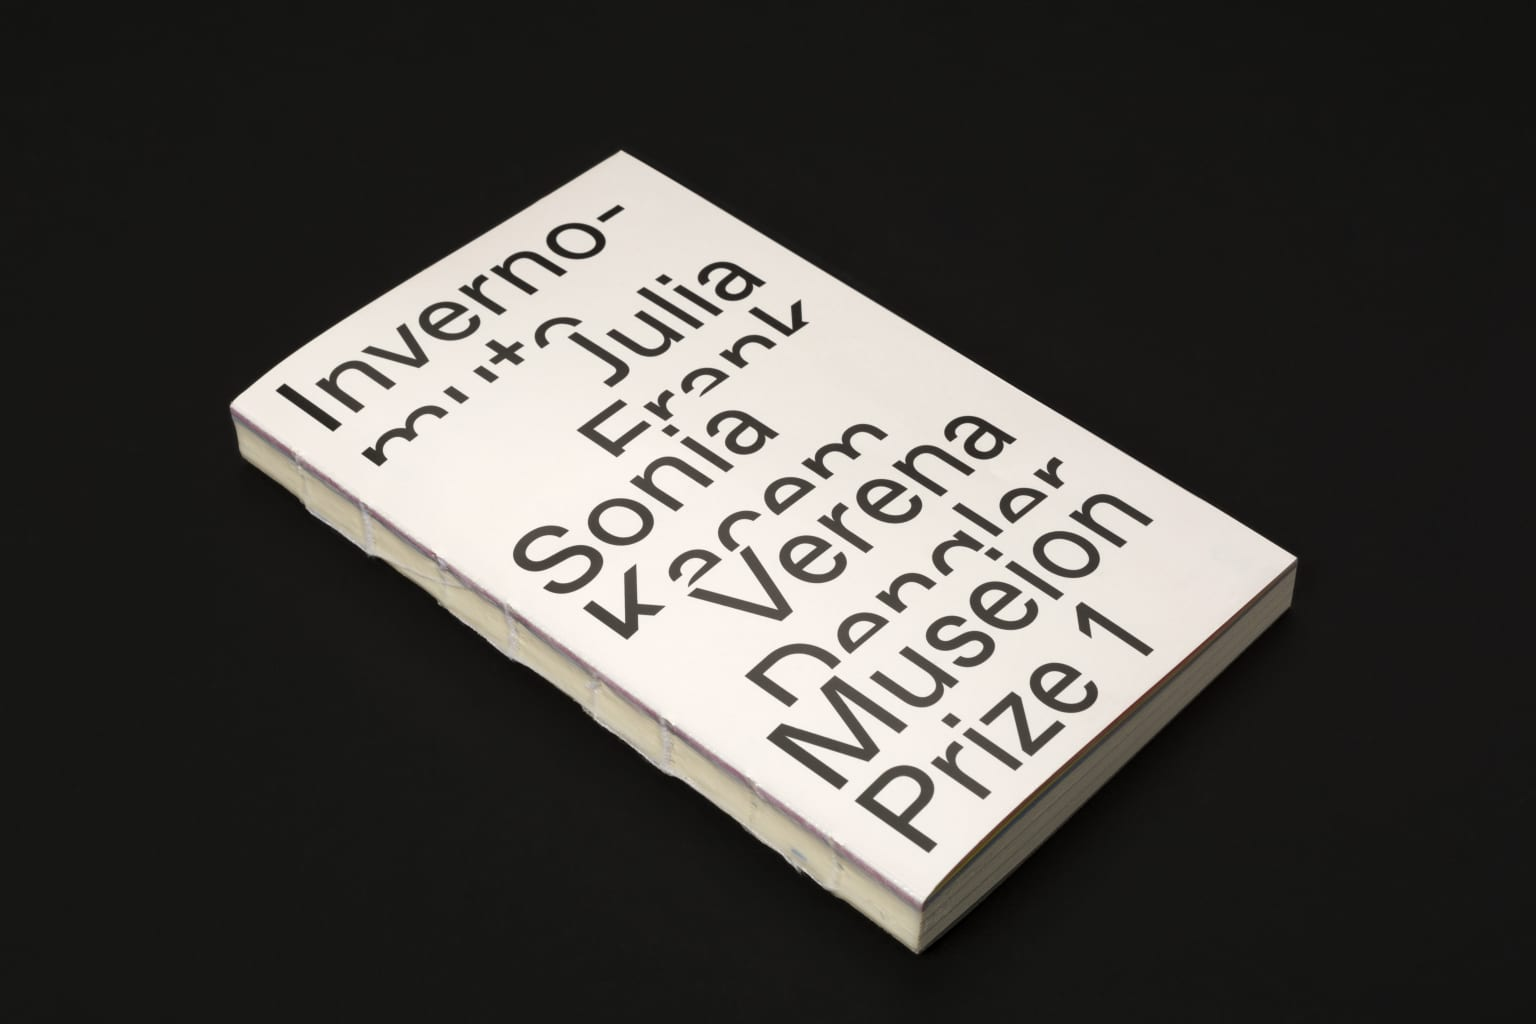 Museion Prize One